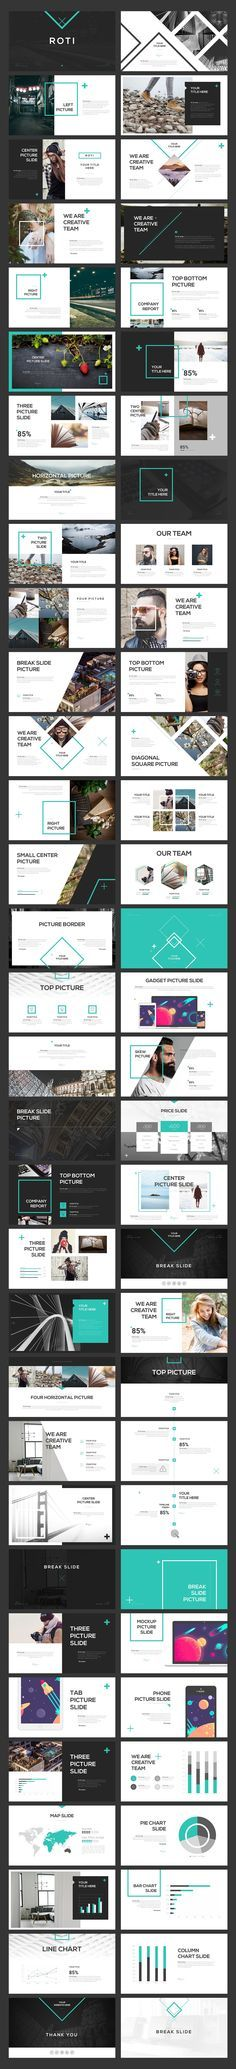 ROTI Powerful and Amazing PowerPoint Template Download Now #Presentation #slides #PPT #startups